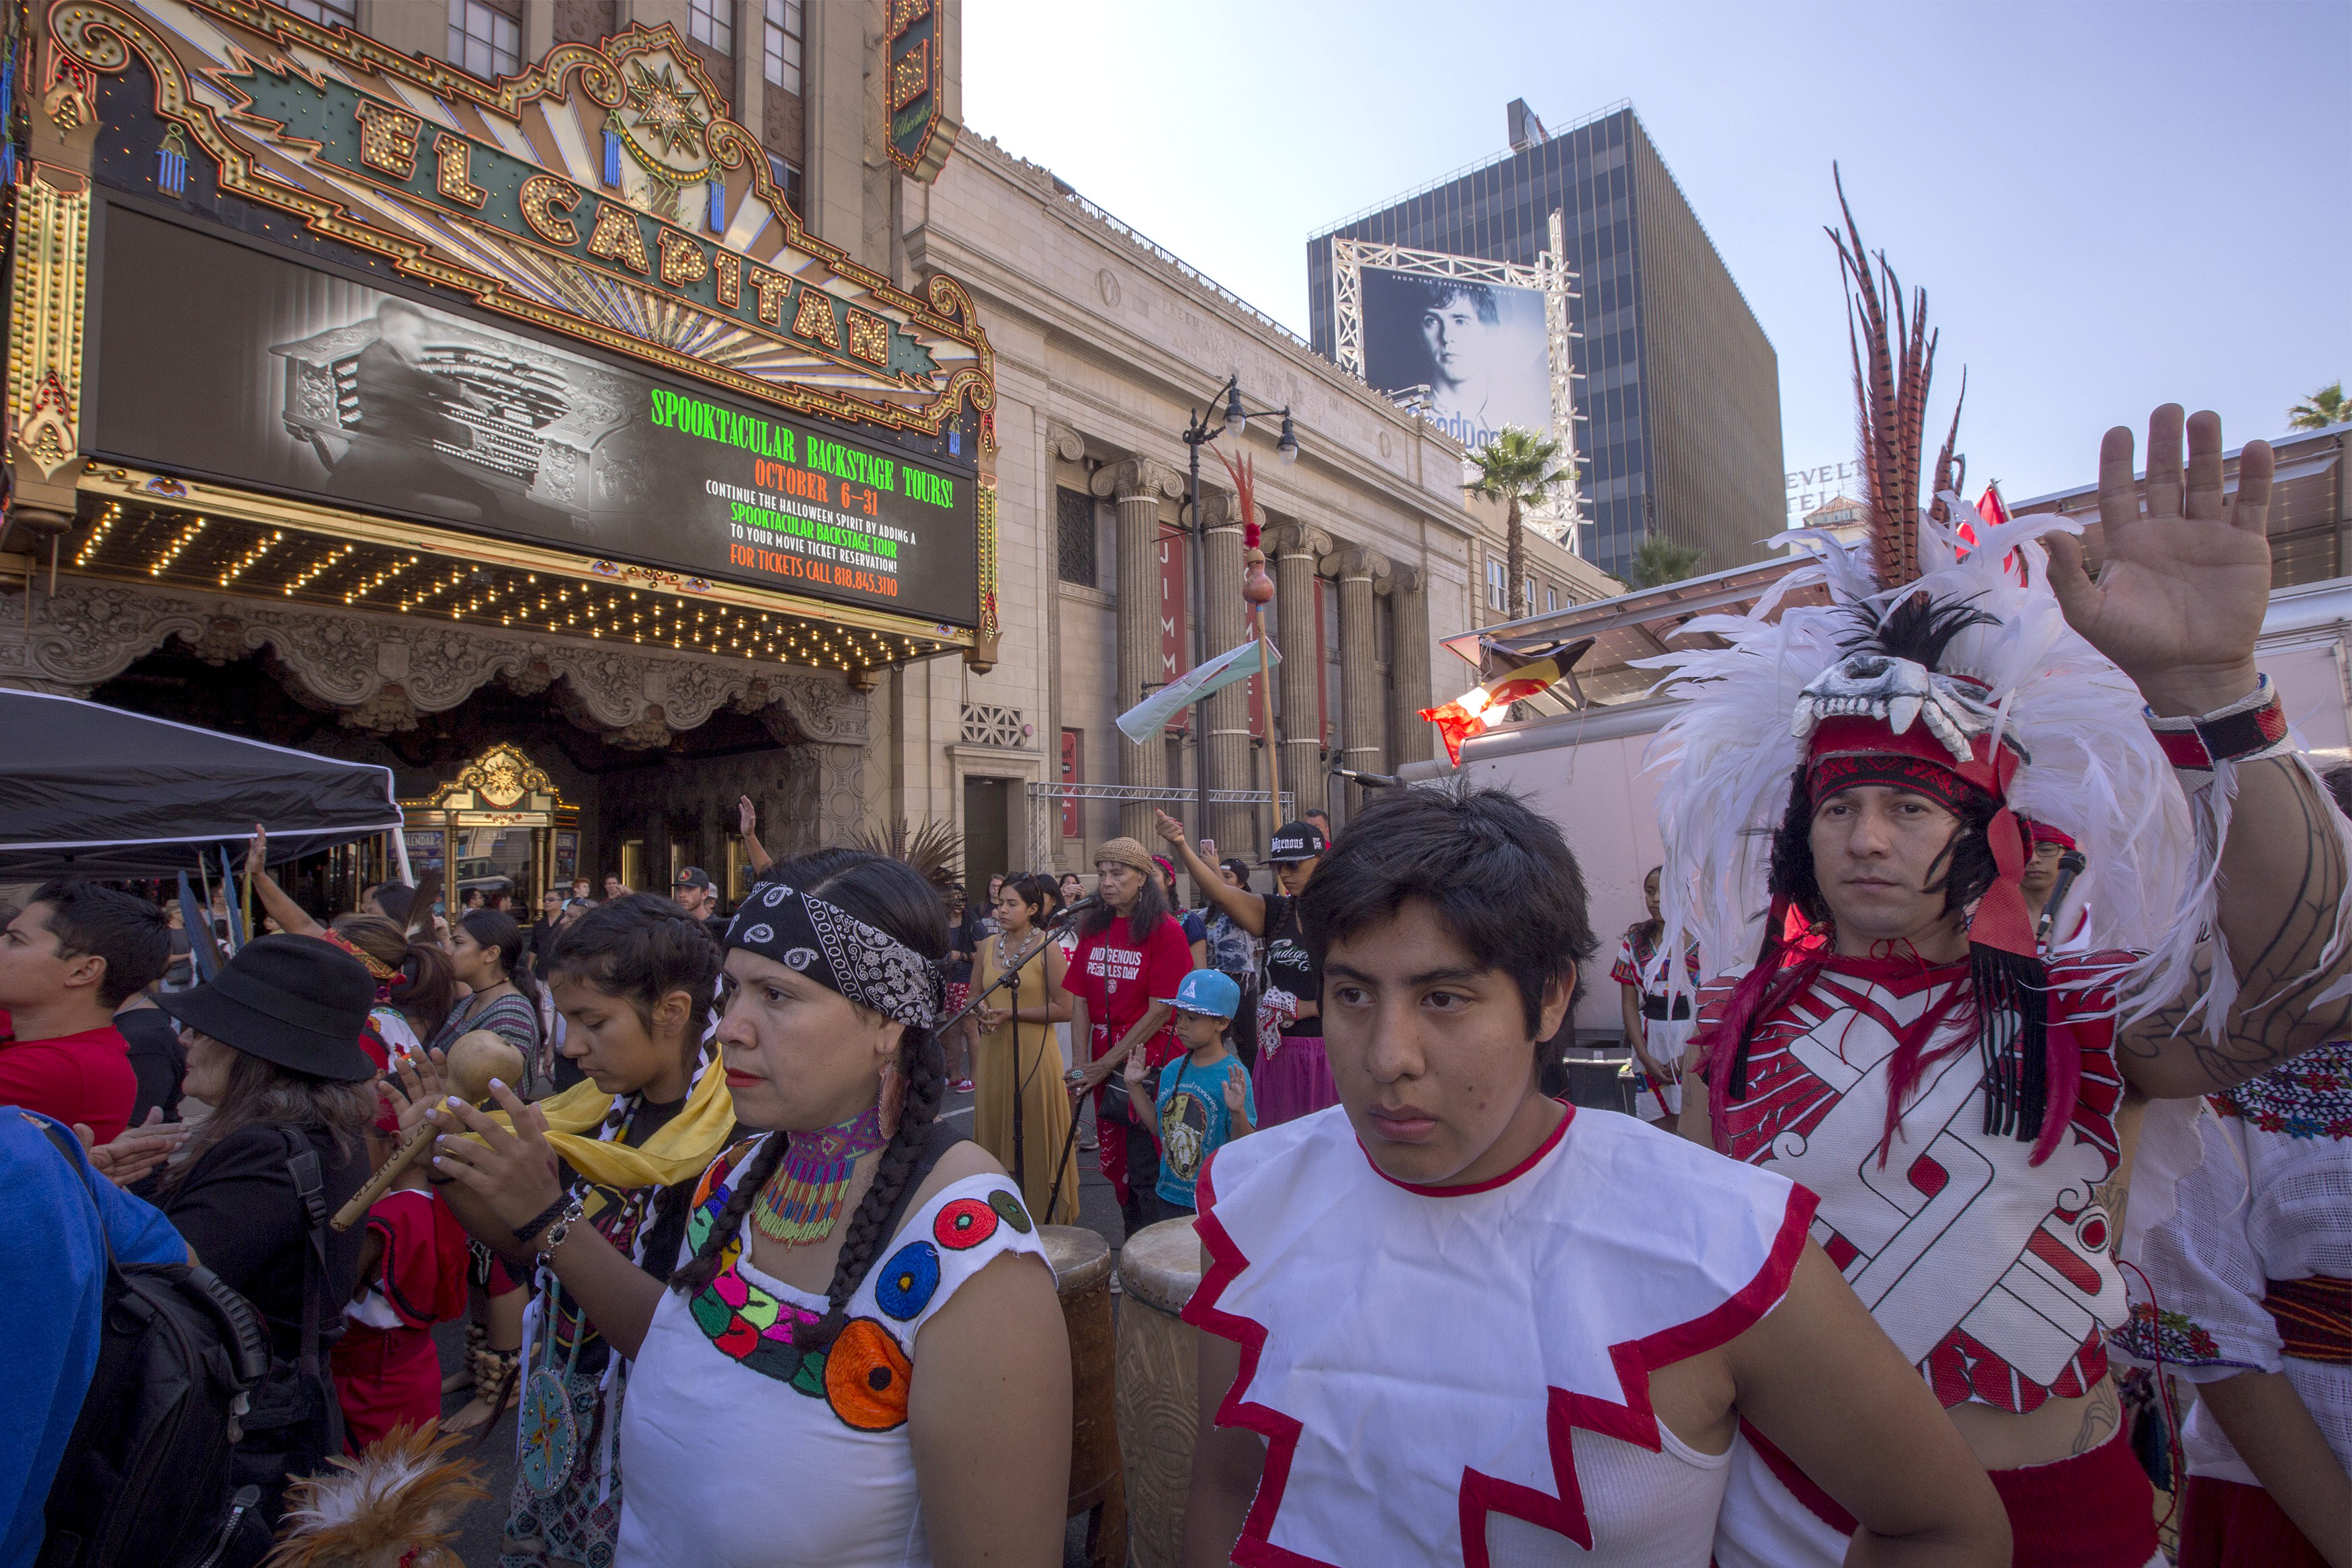 Dancers from Anahuacalmecac International University Preparatory of North America school for indigenous students pray before dancing on Hollywood Boulevard (Photo by David McNew/Getty Images)